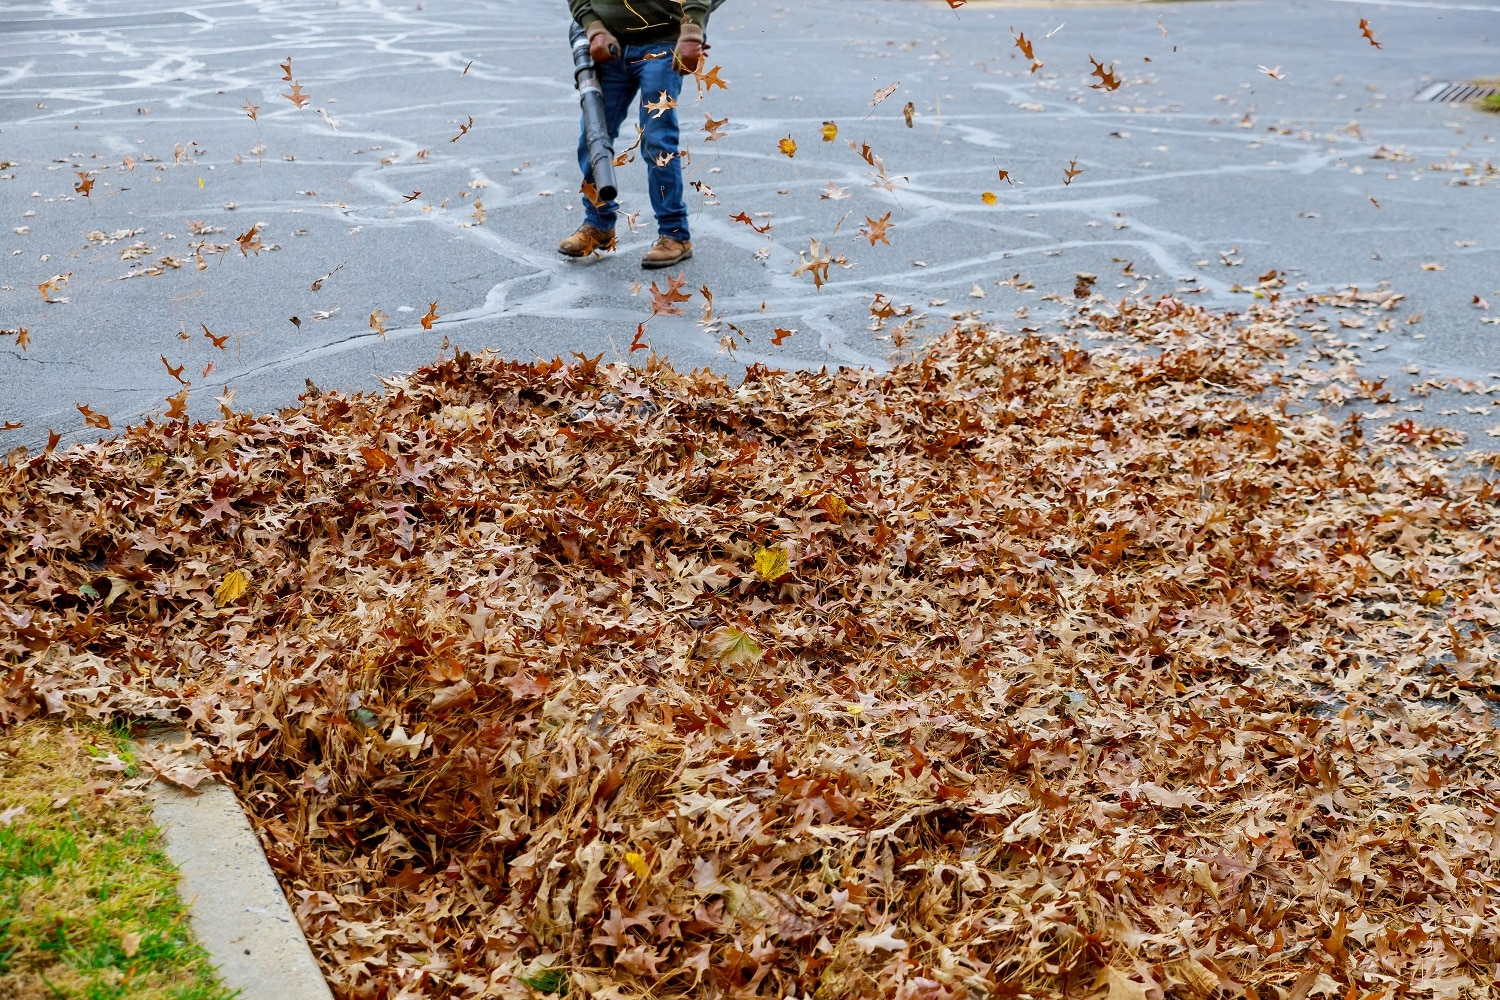 Man working with leaf blower: the leaves are up and down on a sunny day